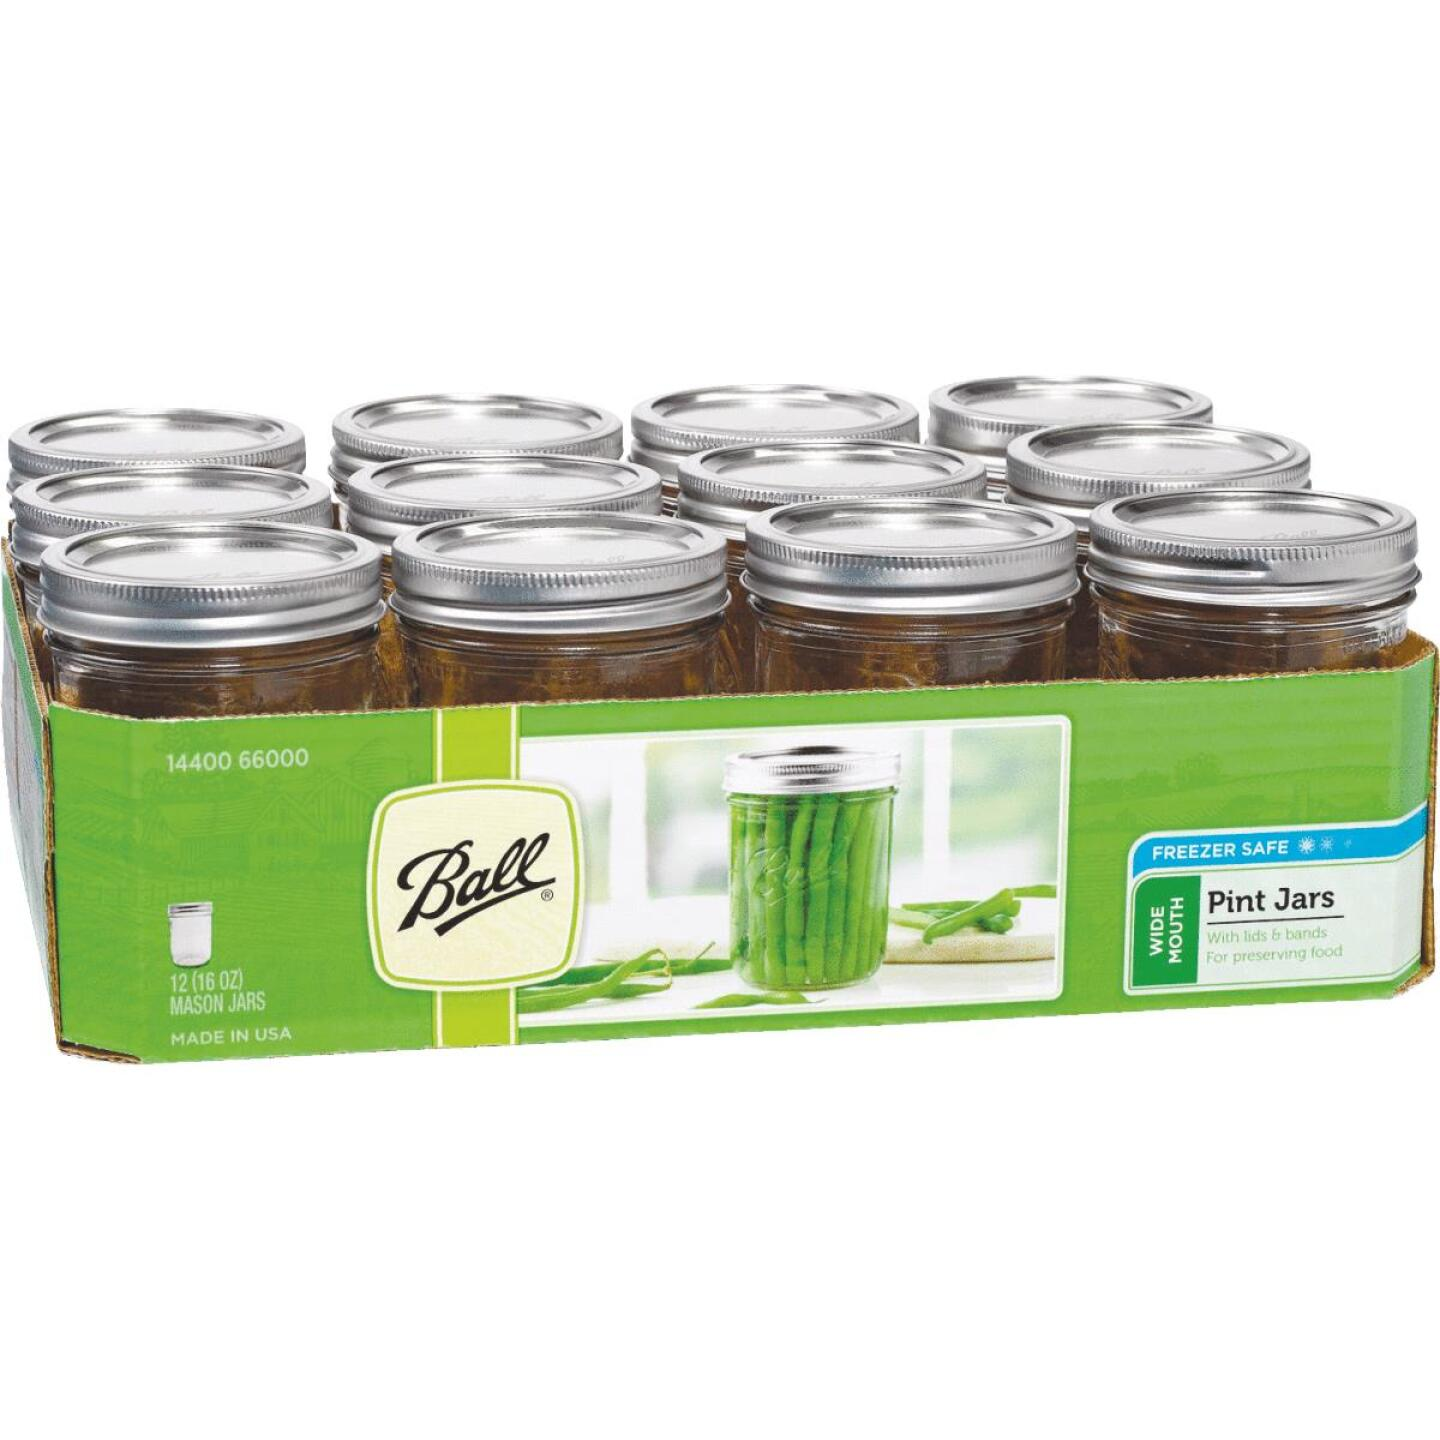 Ball Pint Wide Mouth Can-Or-Freeze Mason Canning Jar (12-Count) Image 1